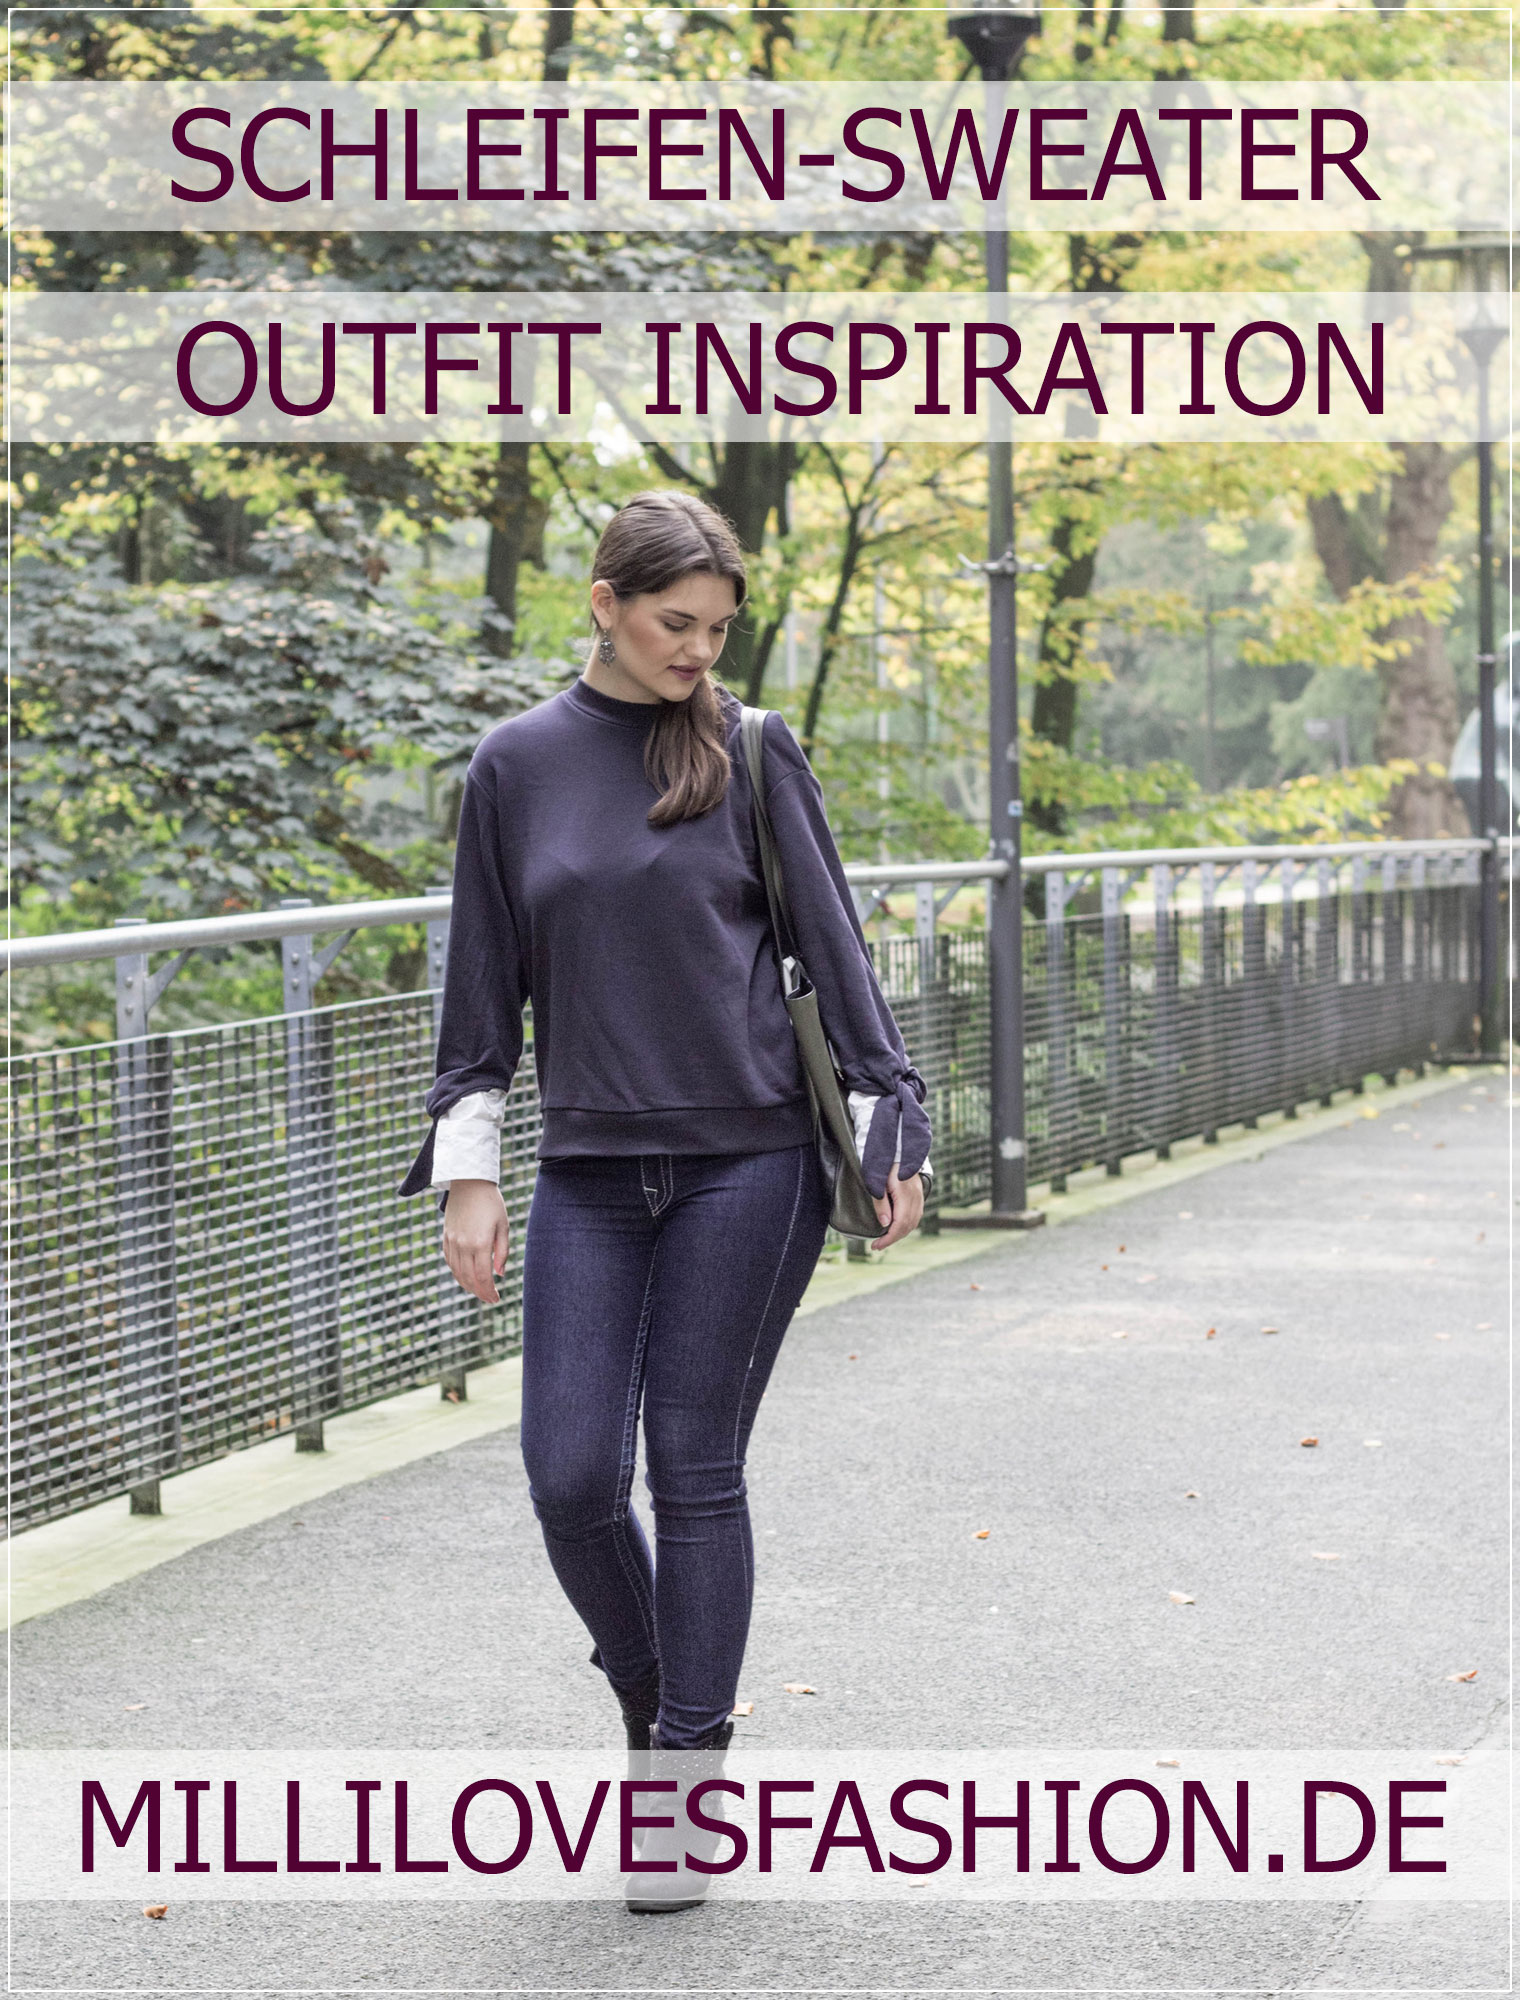 Sweater, Trendpiece, Herbstoutfit, Layering, Herbststyle, Modeblog, Ruhrgebiet, Modebloggerin, Fashionblog, Modeblog